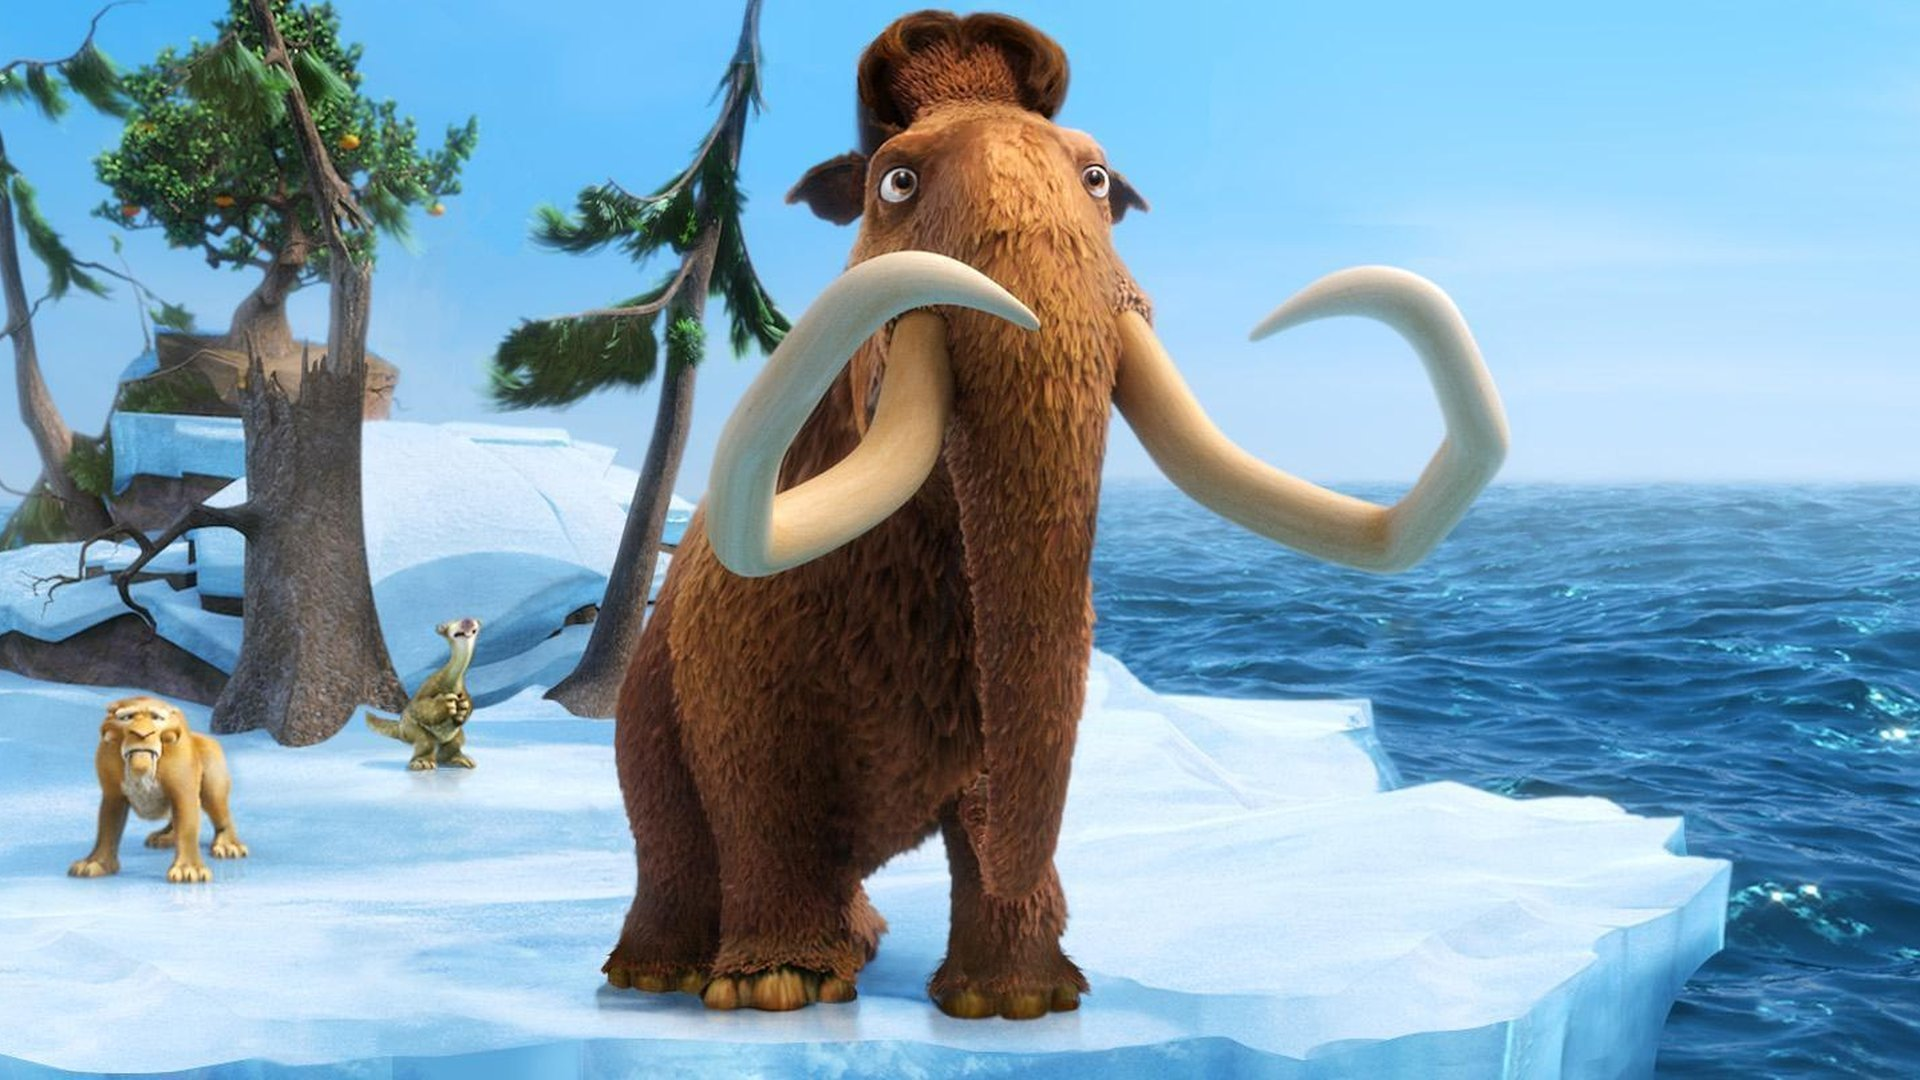 Ice Age: Continental Drift backdrop